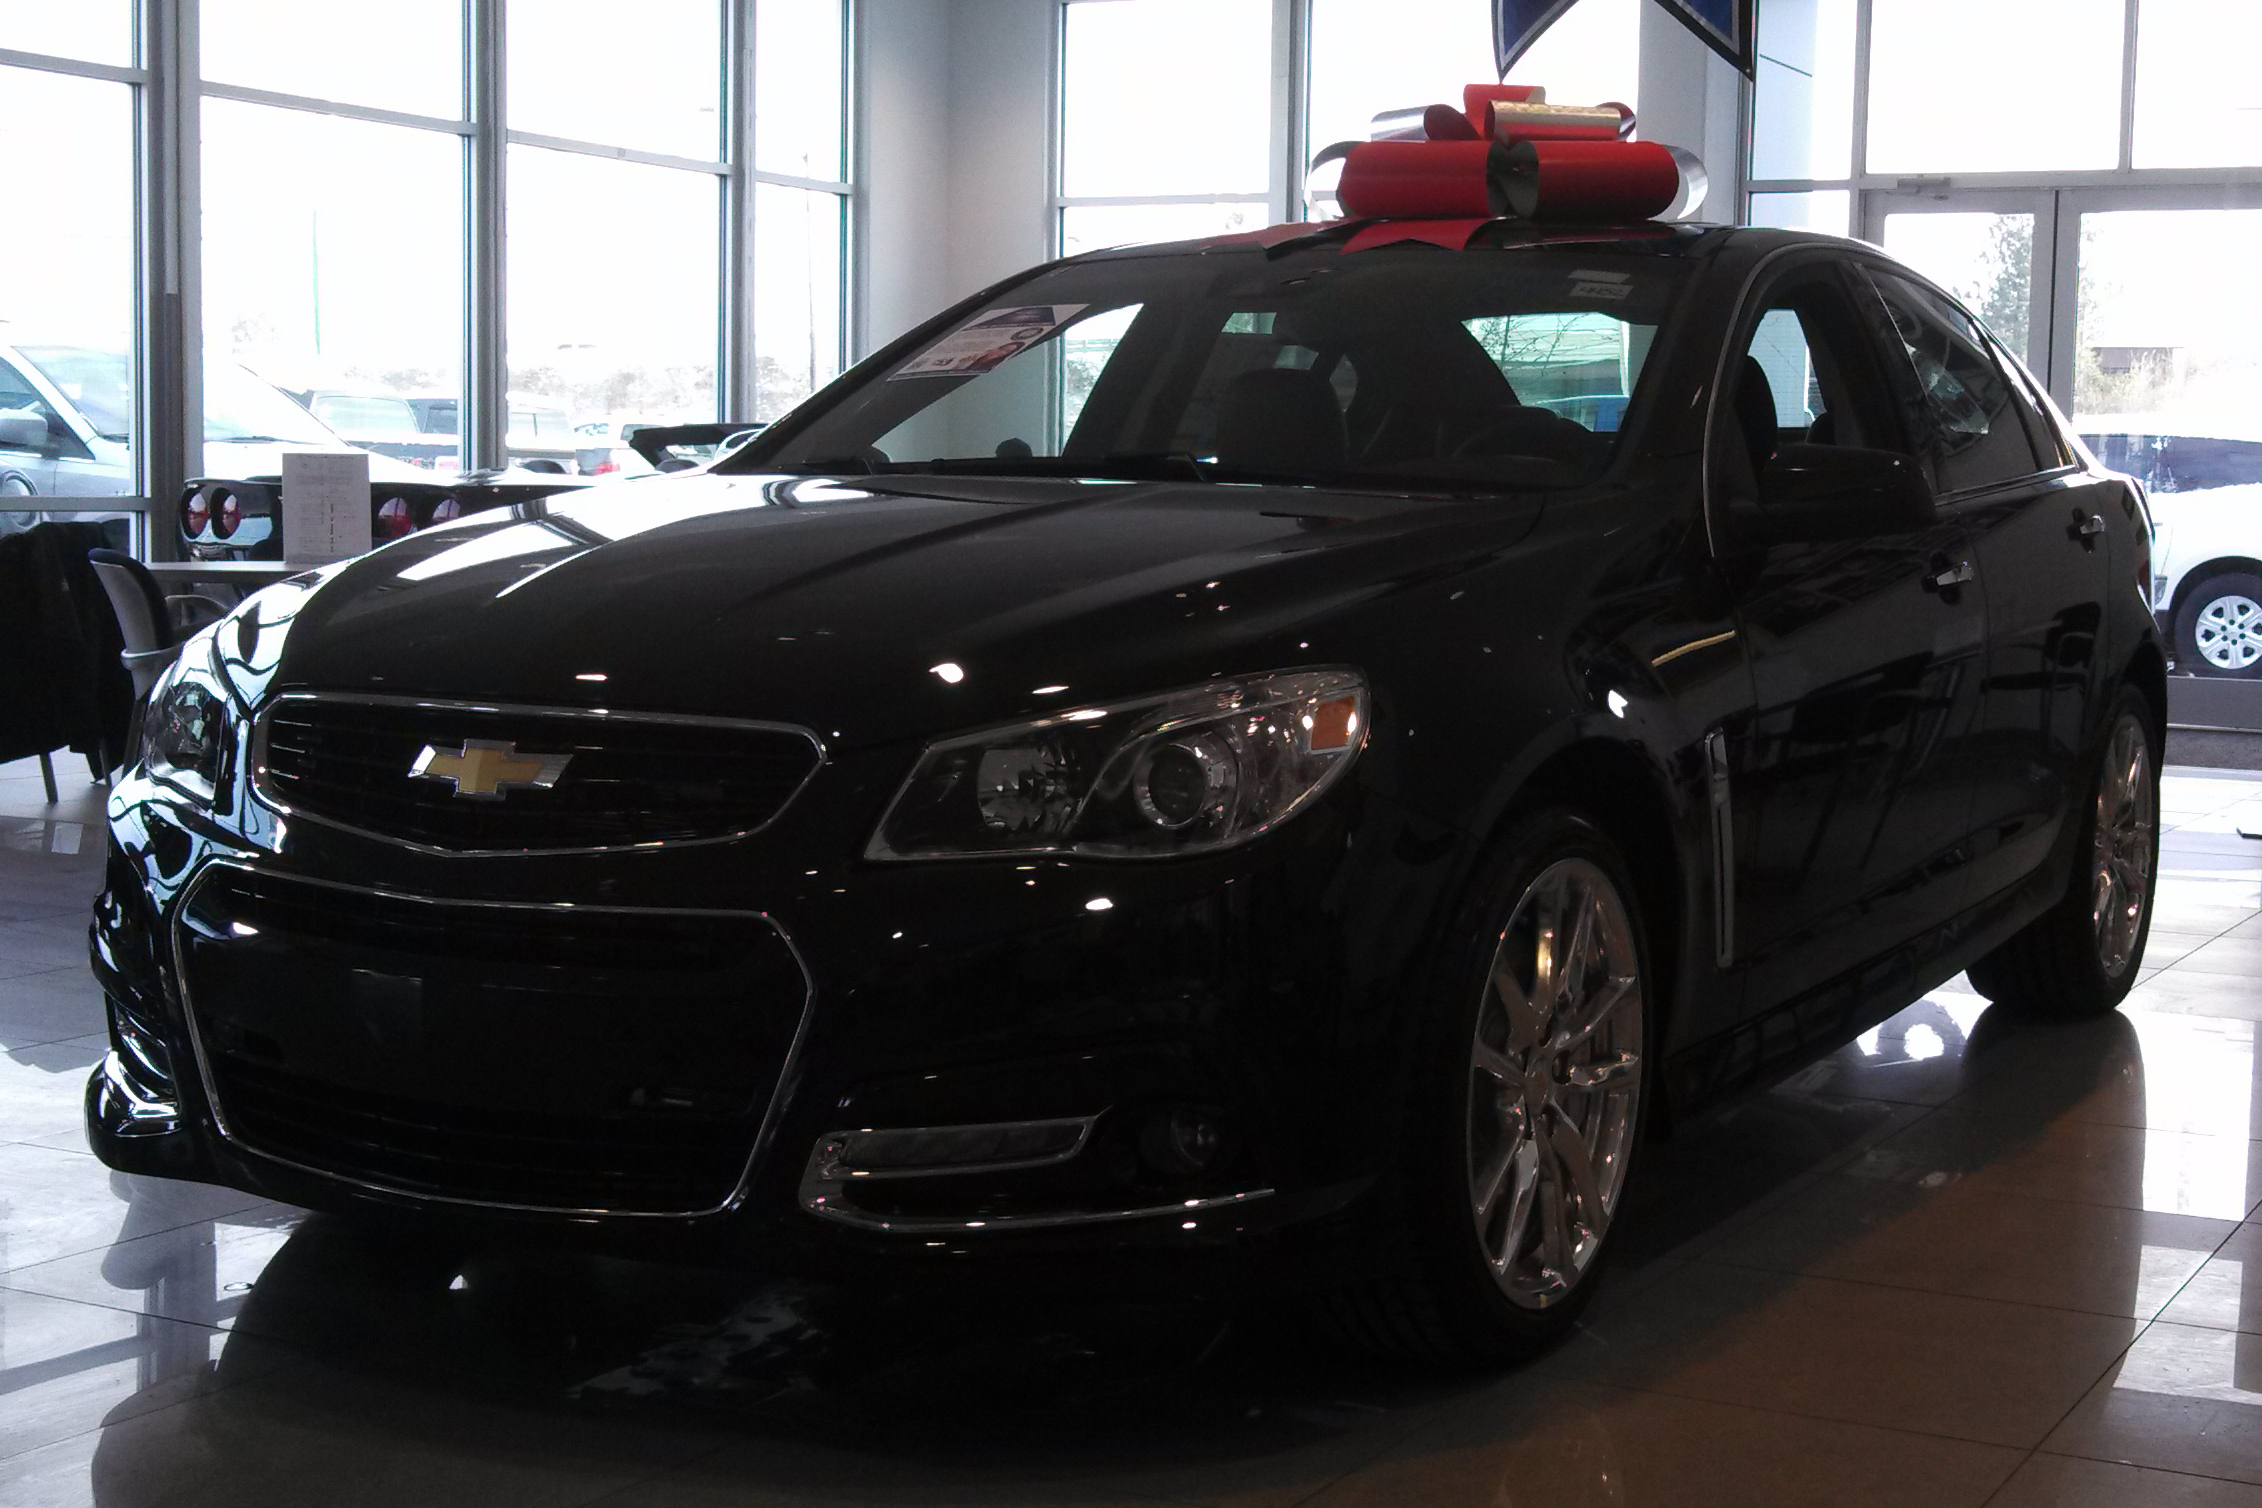 Bill Smith Gmc >> 2014 Chevy Chevrolet SS Sedan at VanDevere Chevrolet in ...